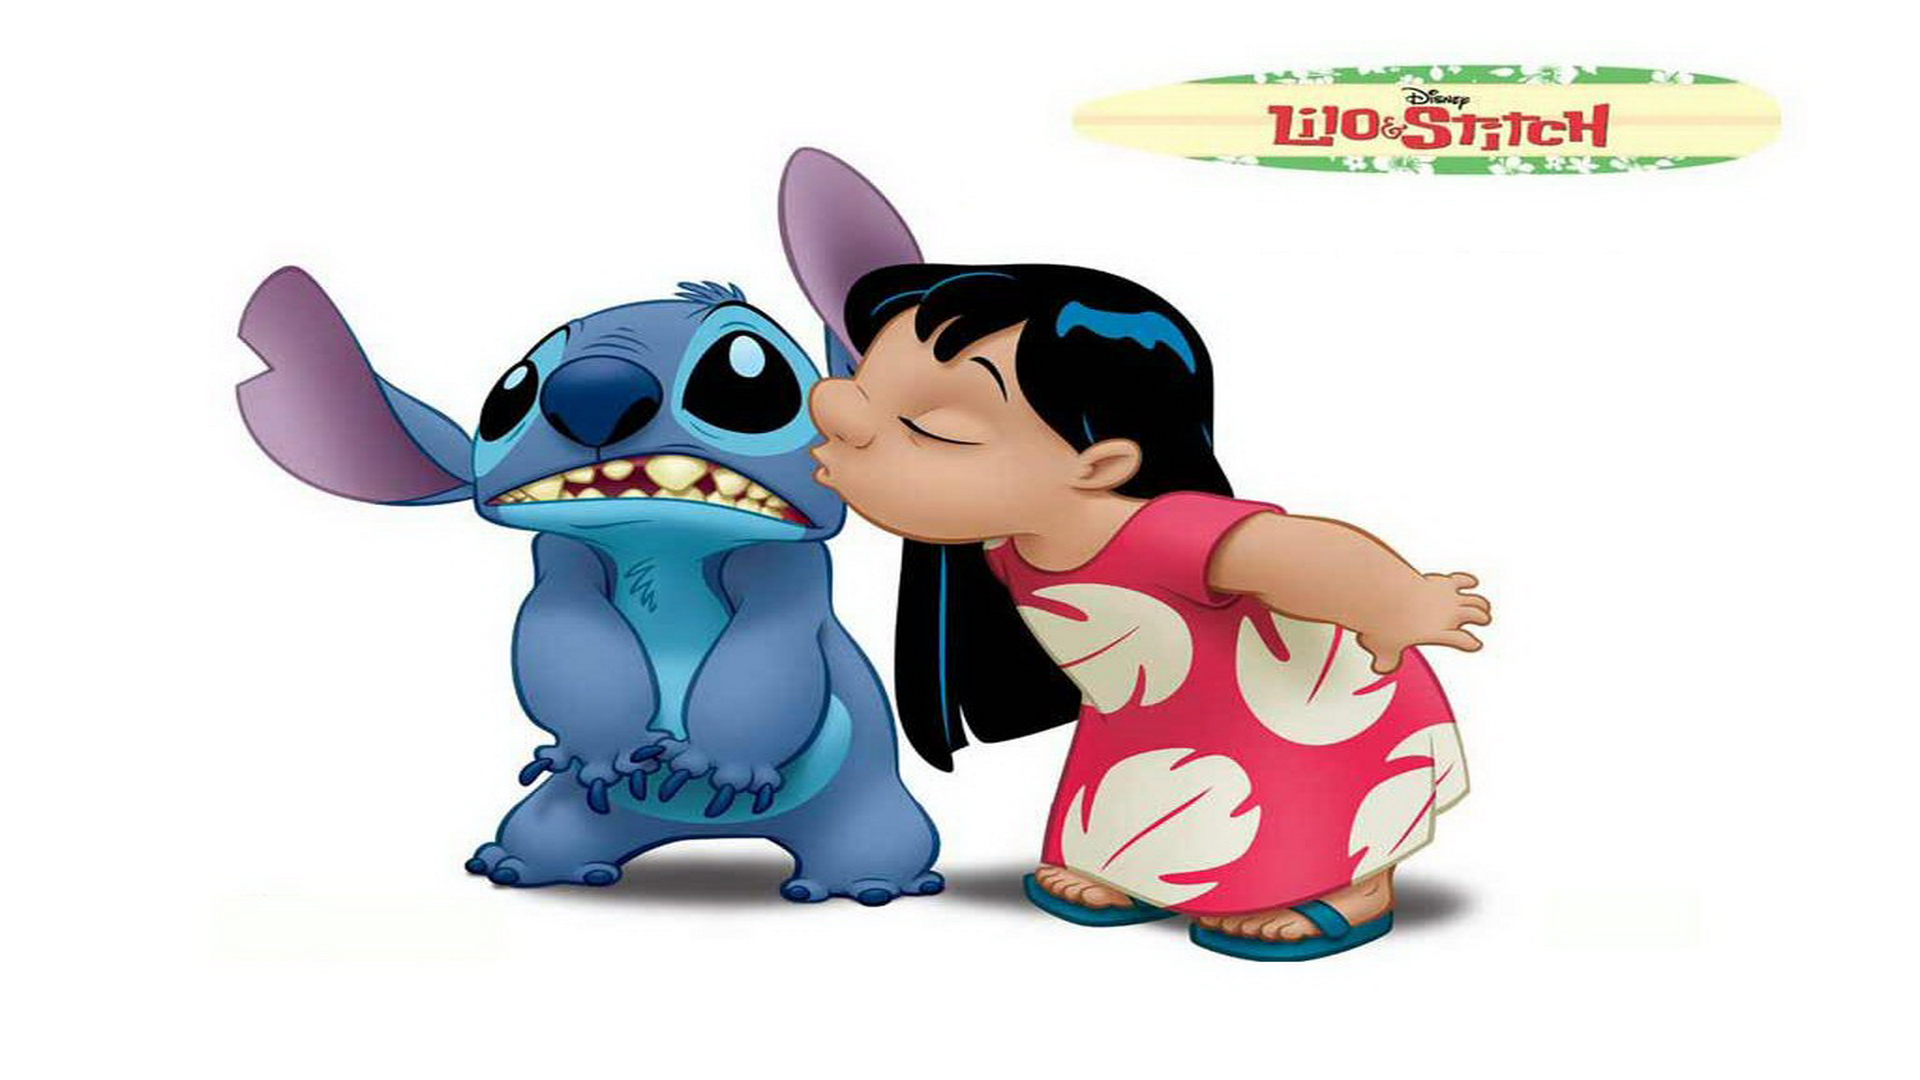 Free Download Disney Wallpapers Hd Desktop Wallpapers Lilo Stitch